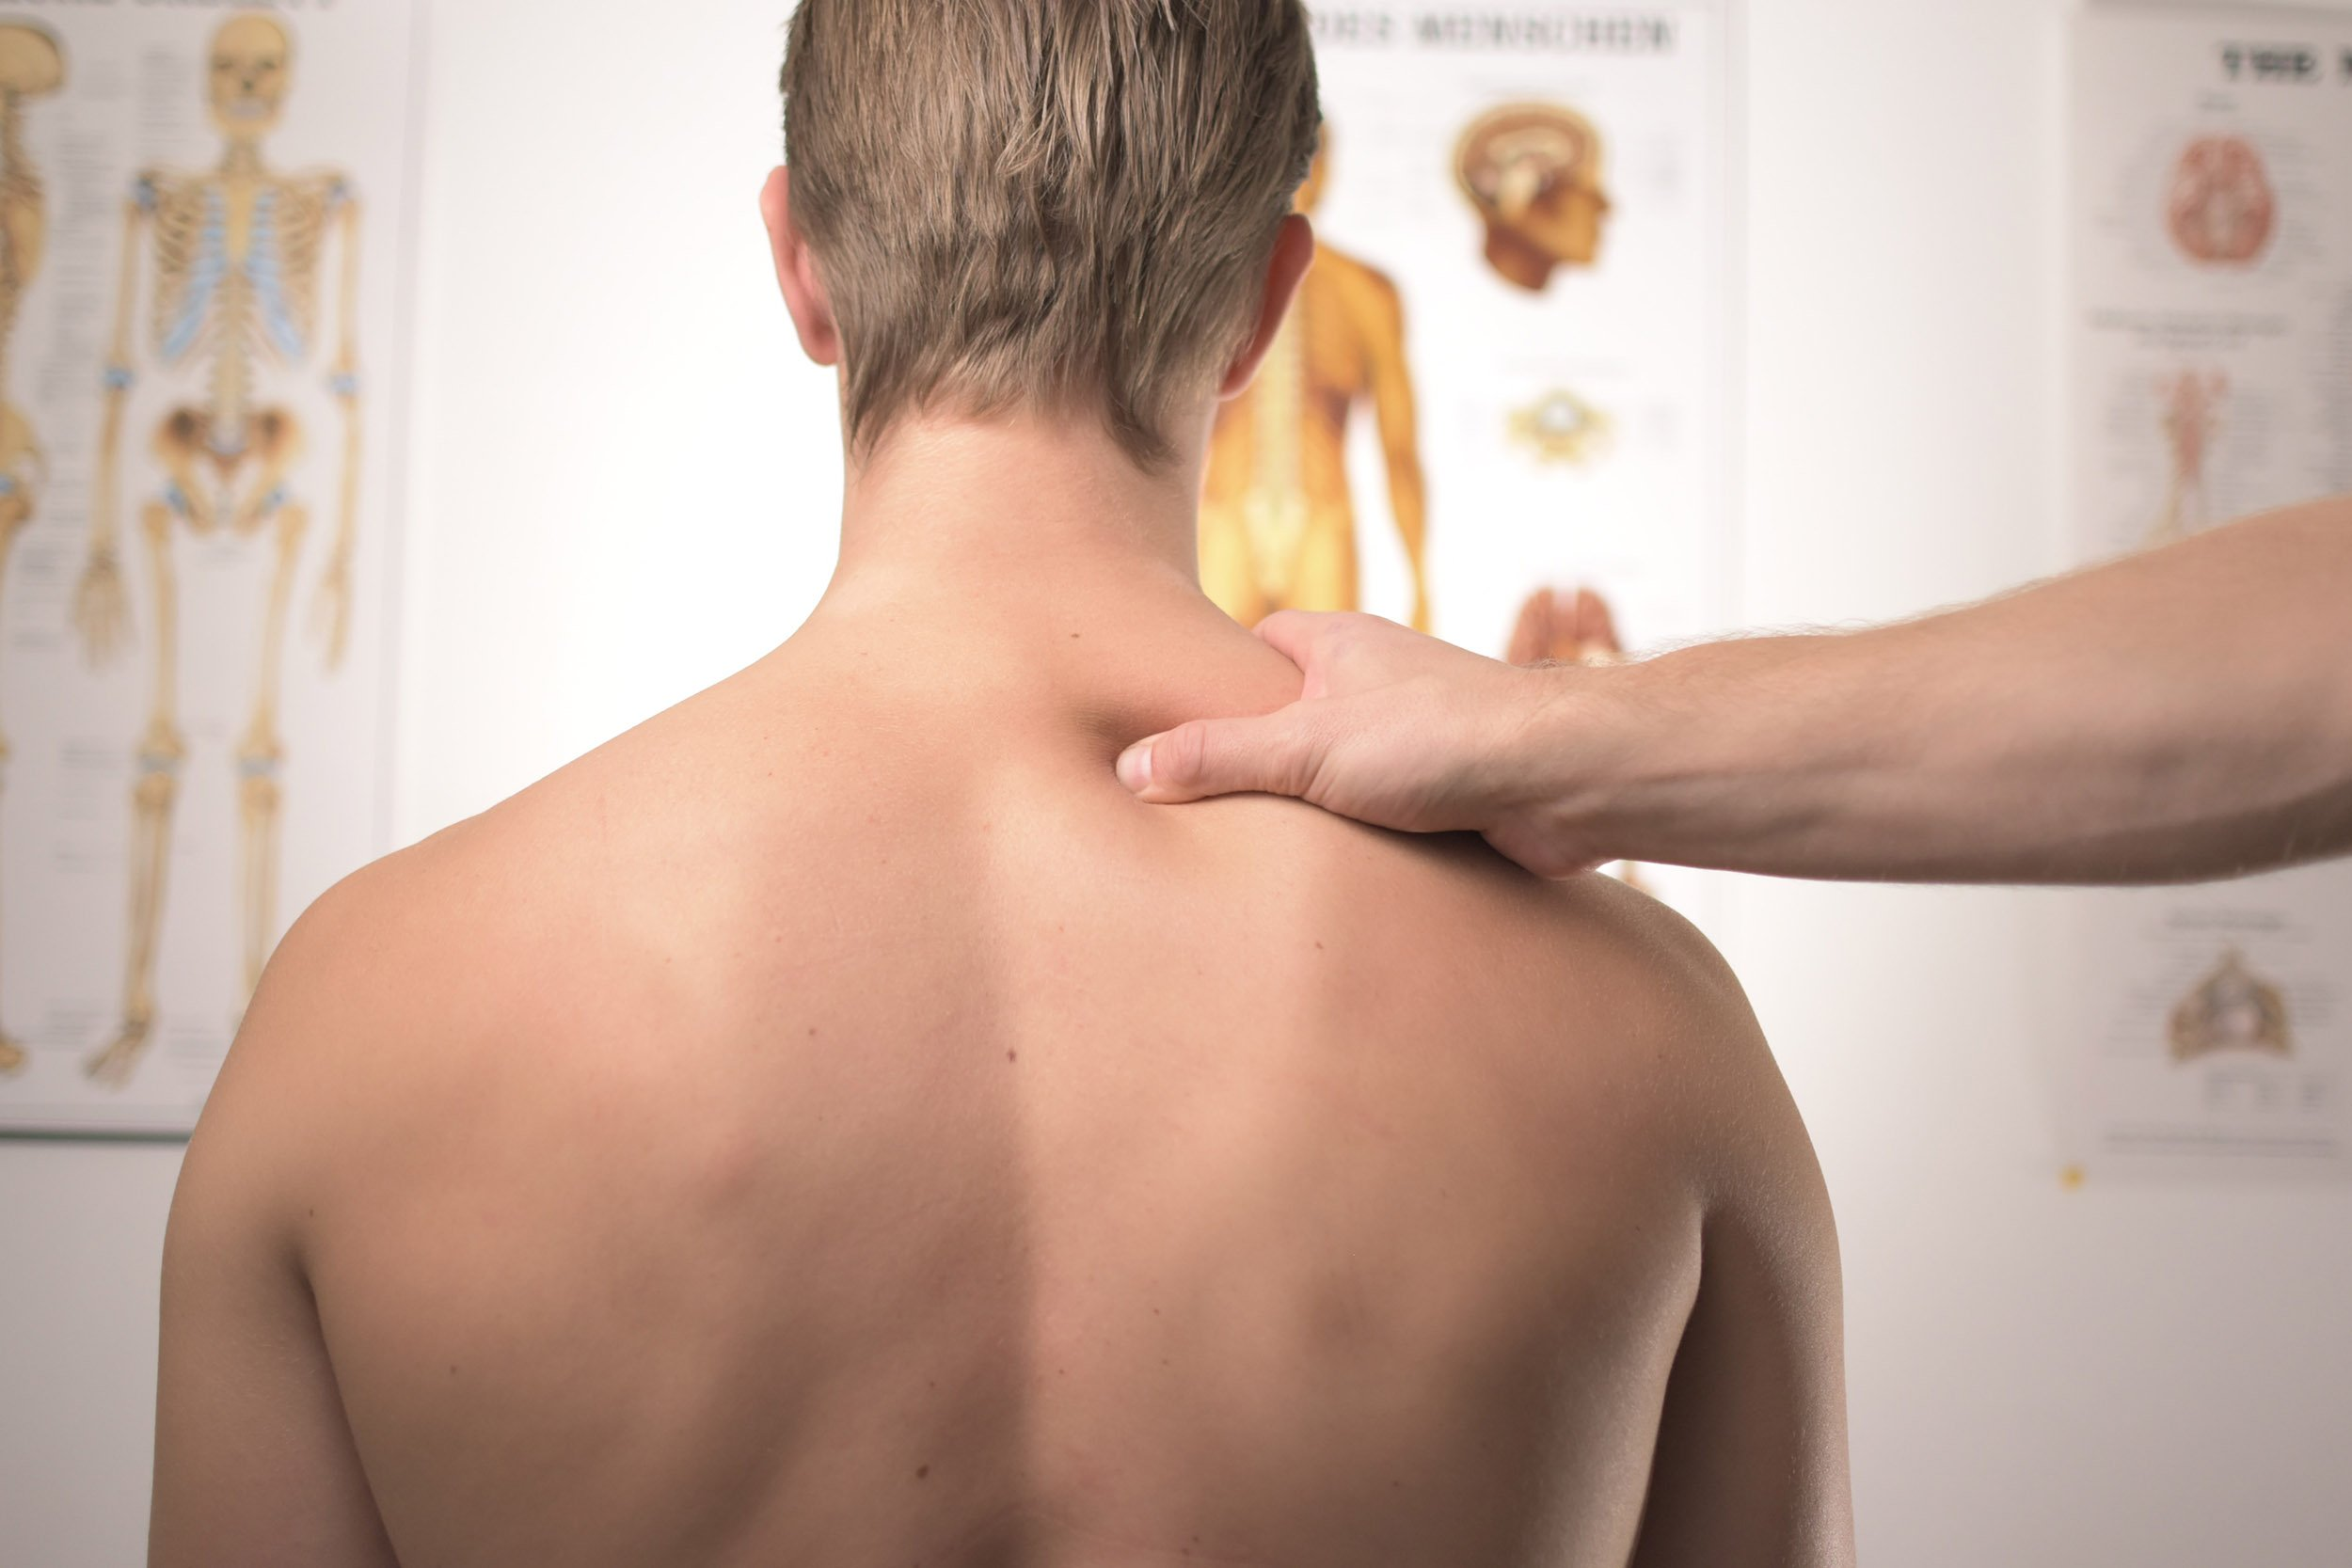 Man getting pressure applied to shoulder area with thumb